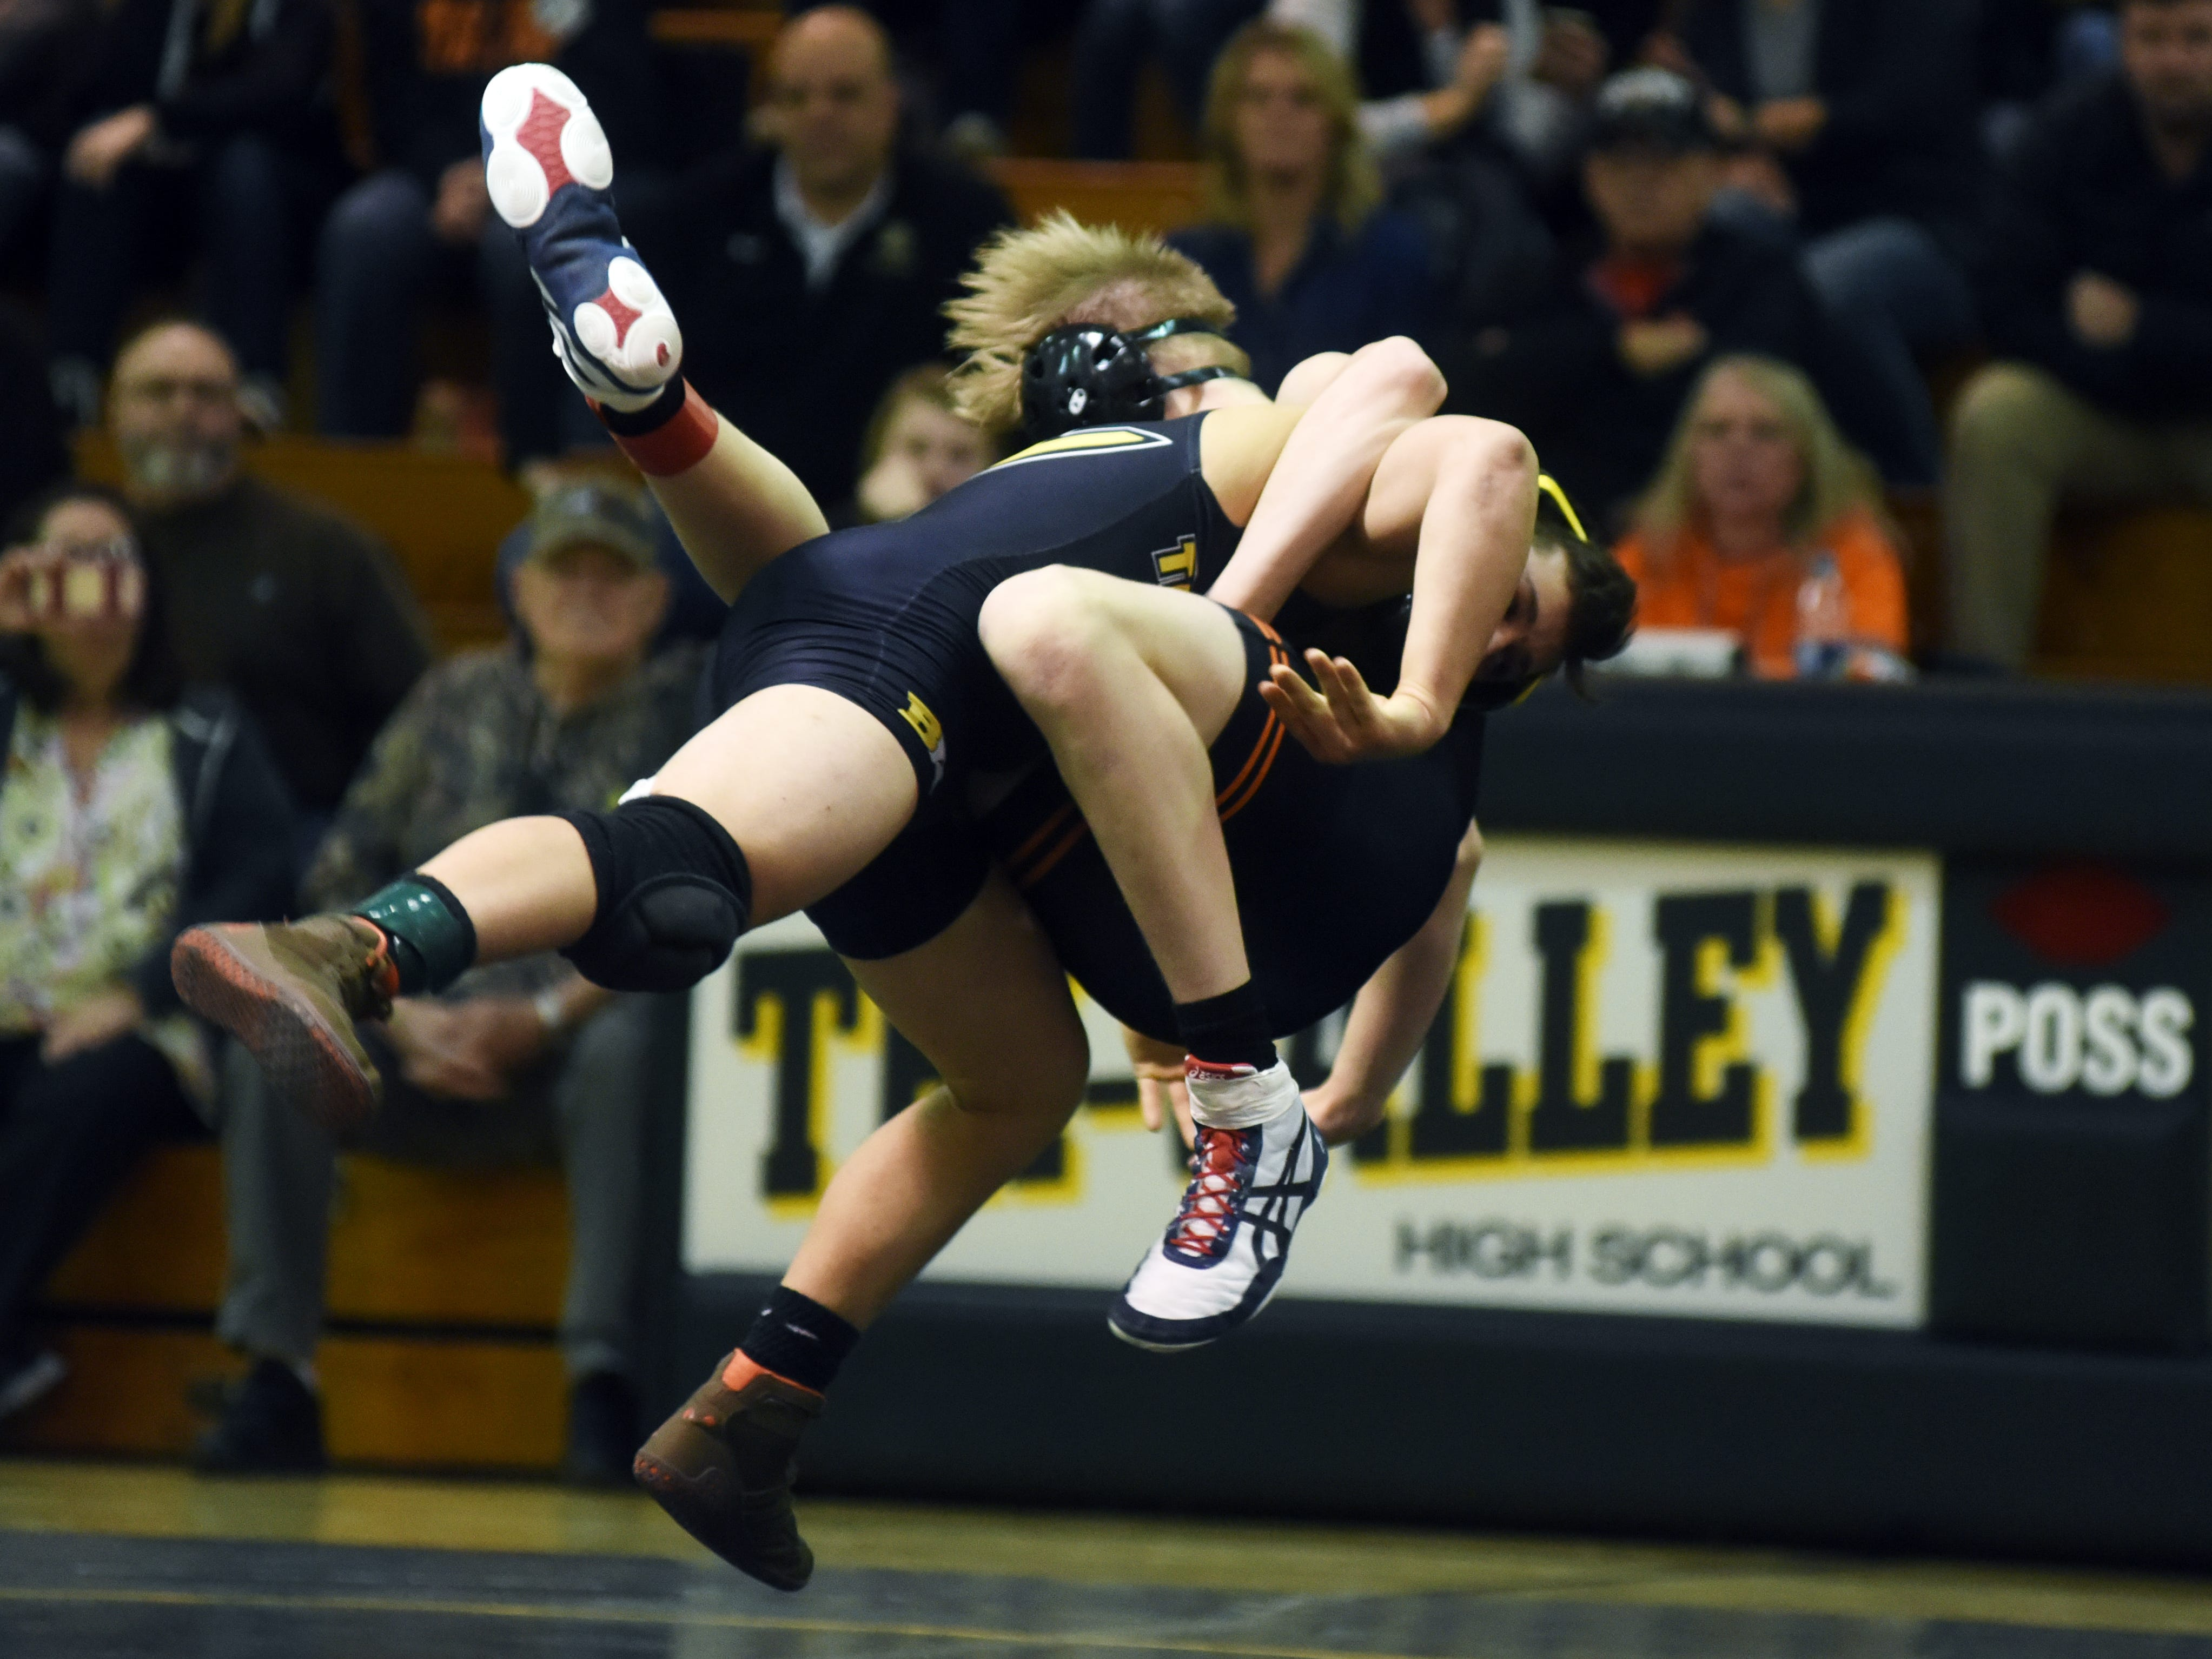 Tri-Valley and New Lexington wrestled on Thursday night in Dresden.